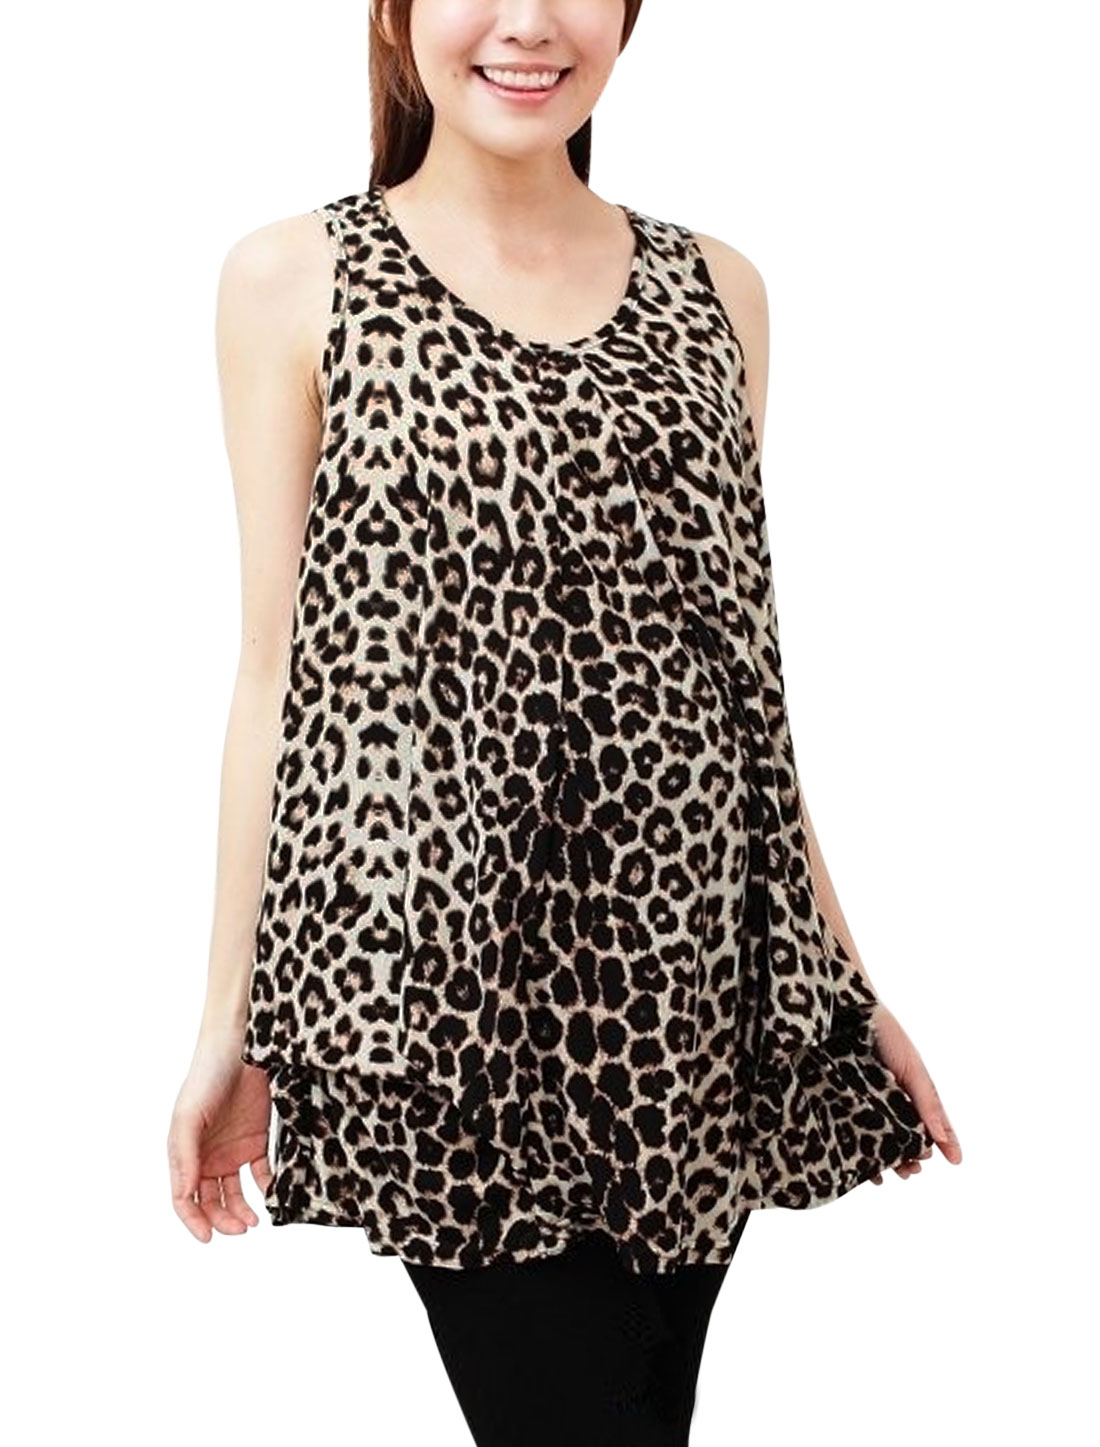 Maternity Leisure Ruched Detail Leopard Prints Top Brown M